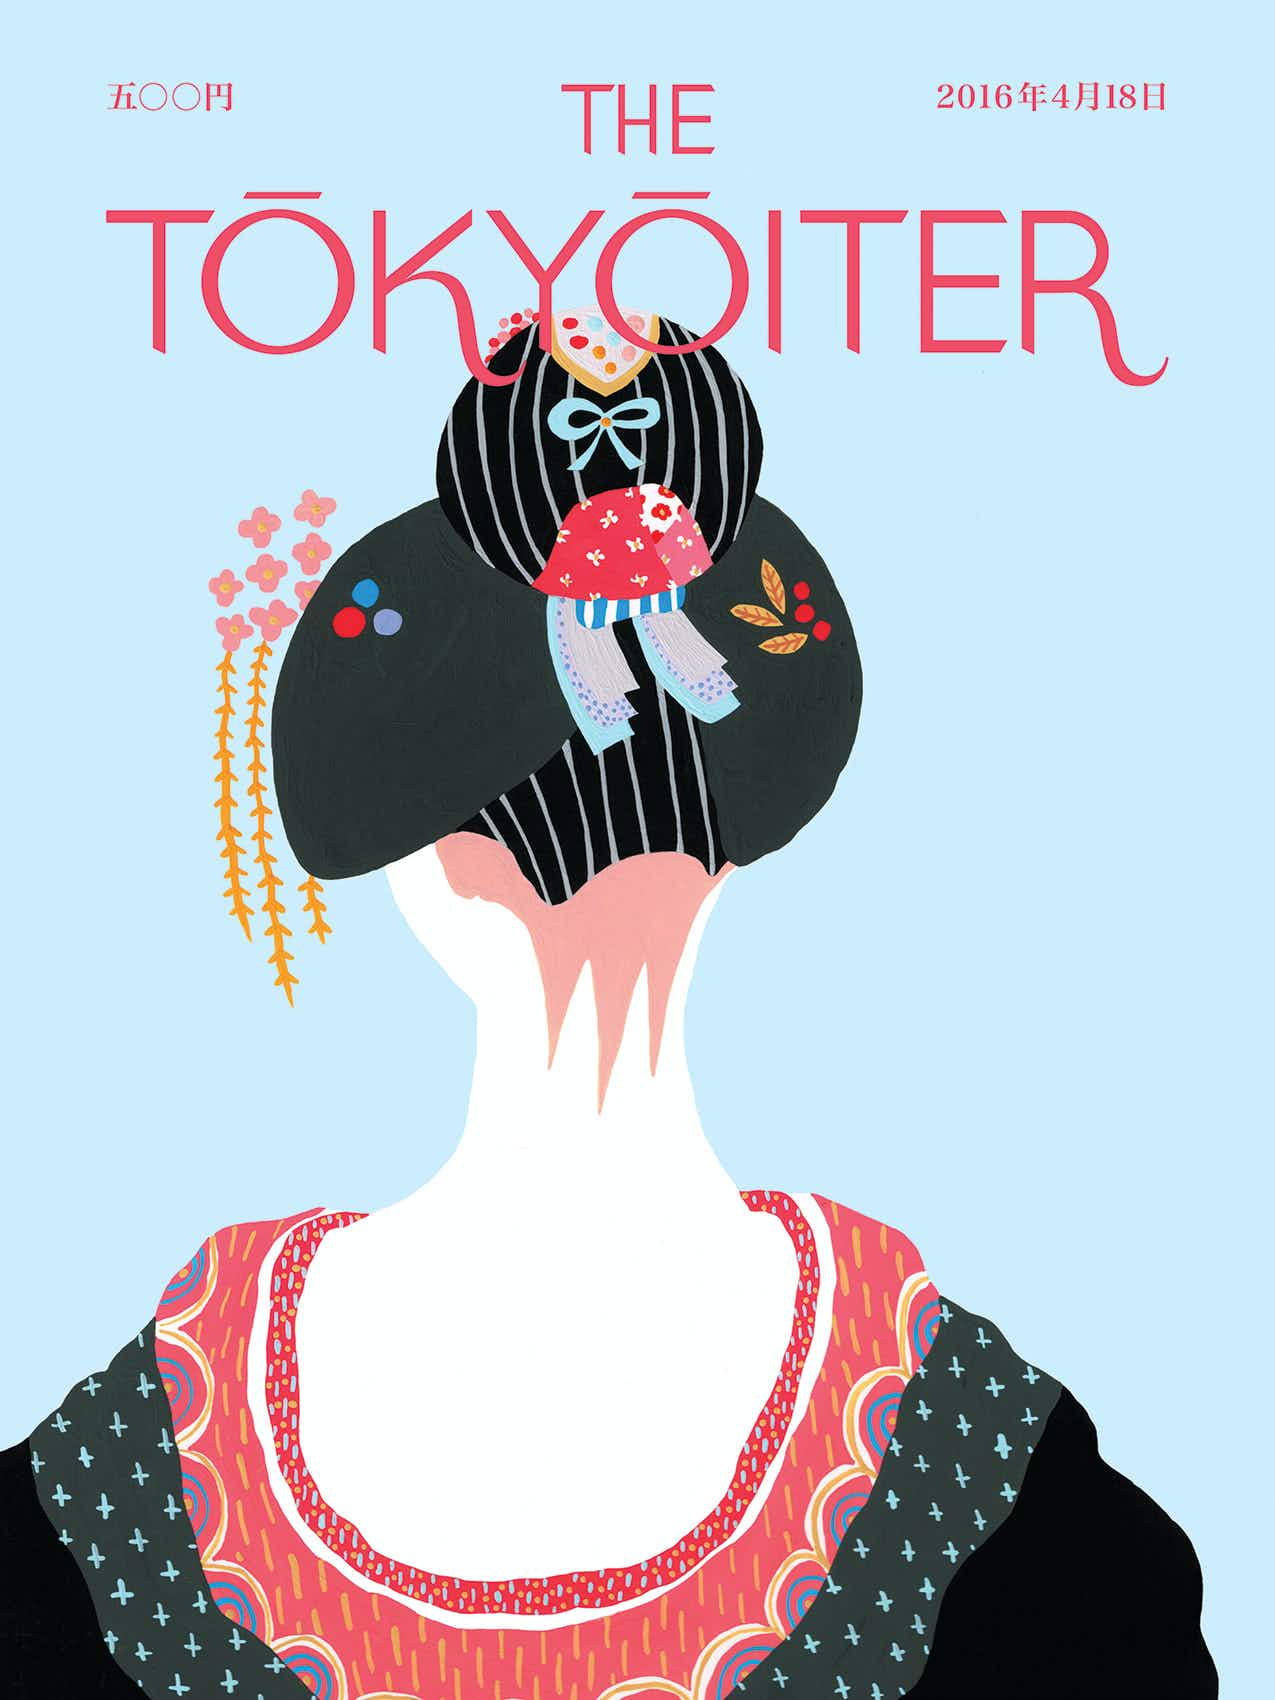 The Tokyoiter: celebrating Tokyo in all its glory in the artistic style of The New Yorker